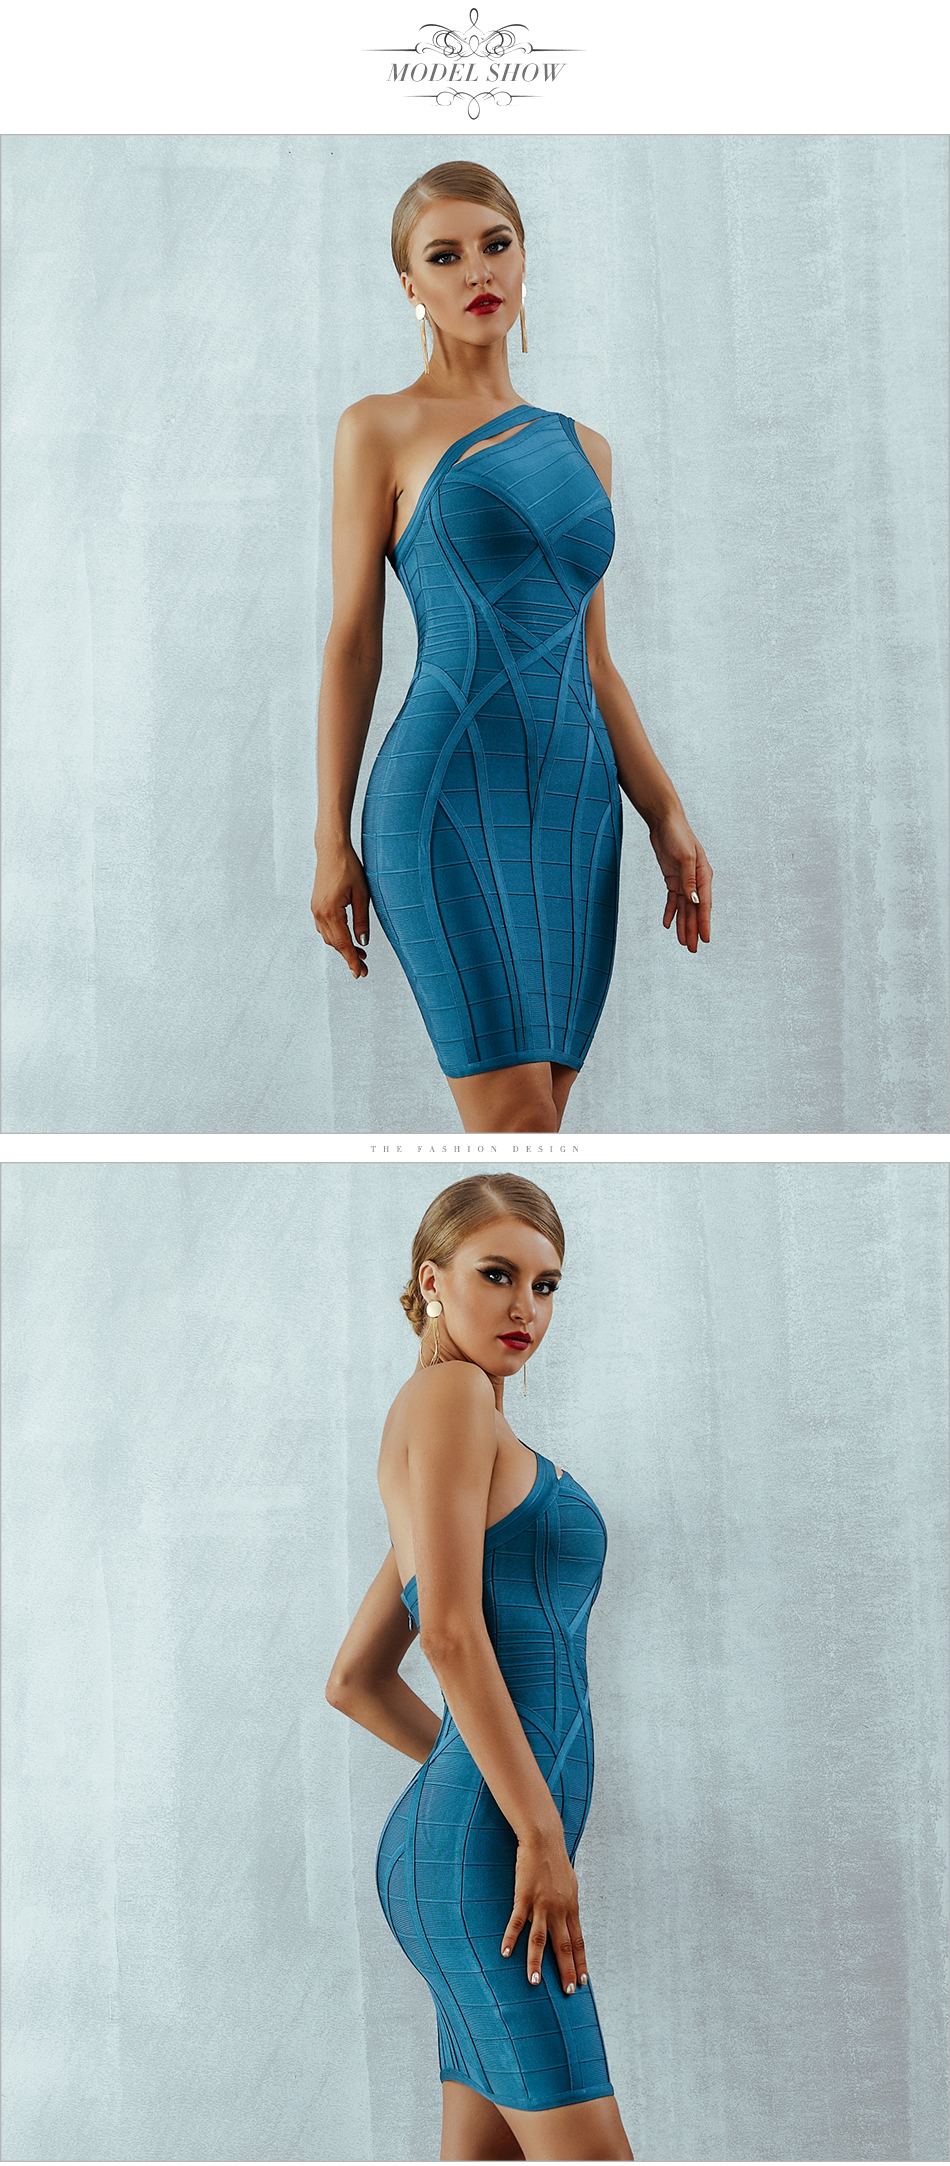 Hfc669525d6fa4e76a08cd2dd3ea818b9R - Adyce 2020 New One Shoulder Summer Women Bodycon Bandage Dress Sexy Hollow Out Sleeveless Midi Celebrity Runway Party Club Dress